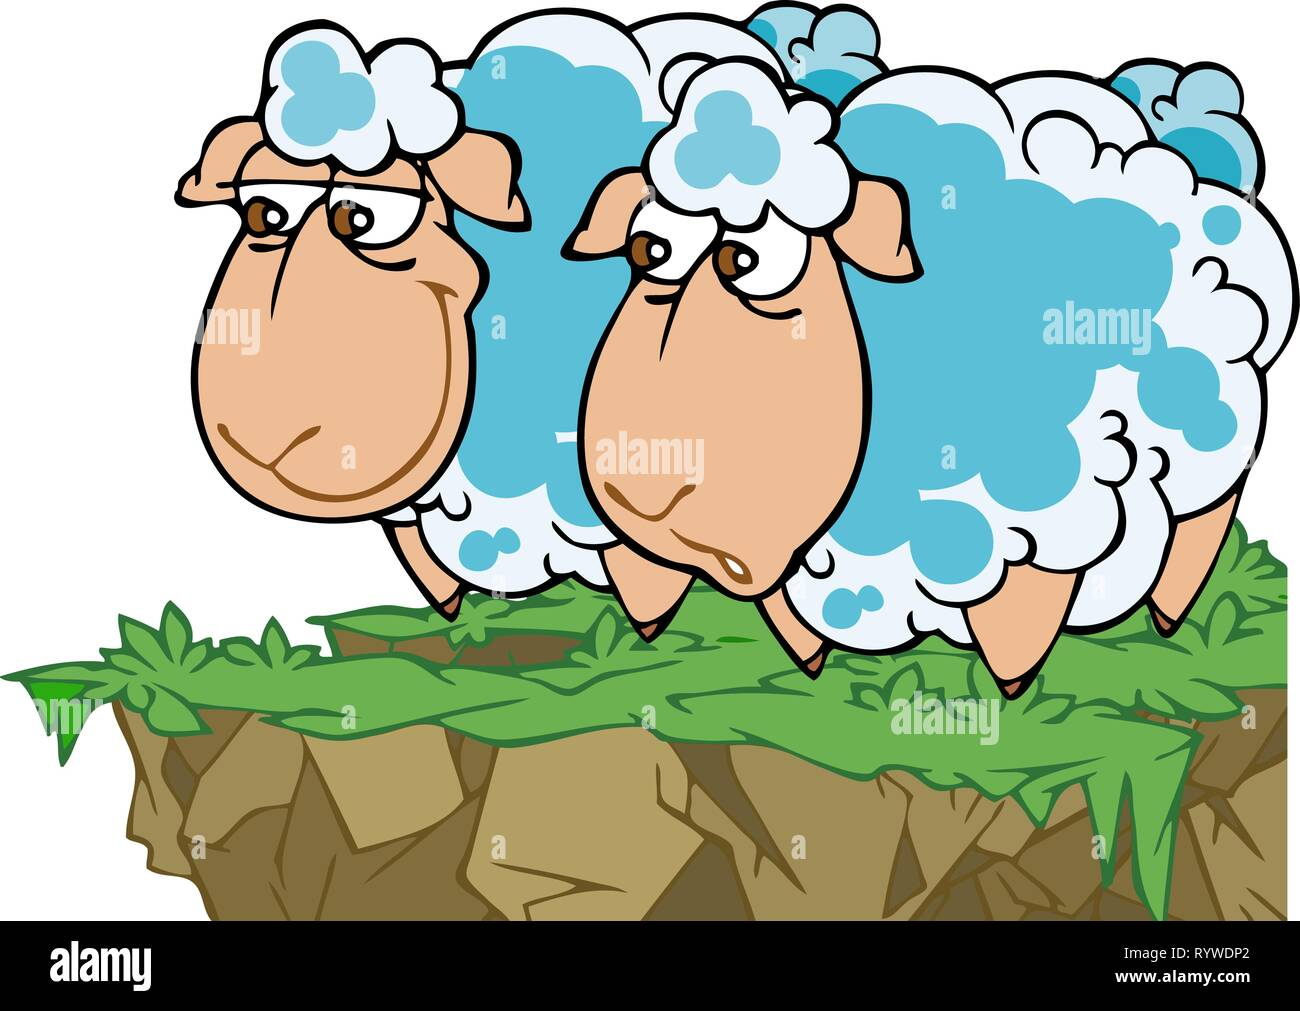 In the vector illustration, two cartoon funny sheep in a meadow. - Stock Vector